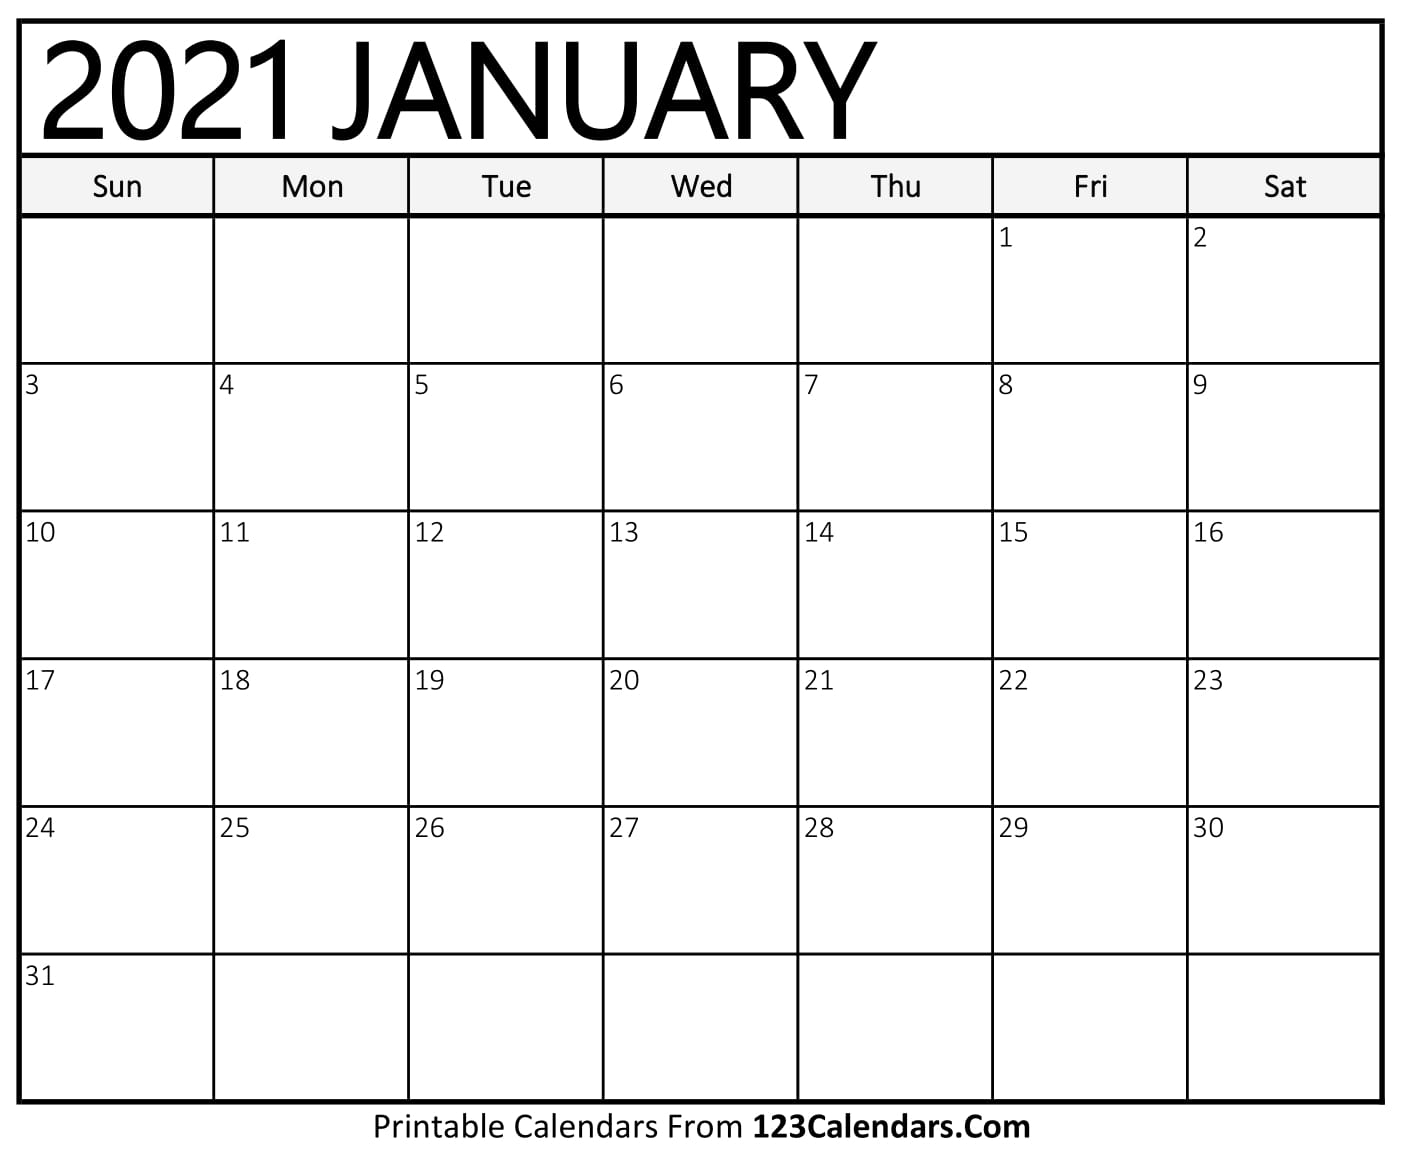 Pick Print Free 2021 Monthly Calendar Without Downloading